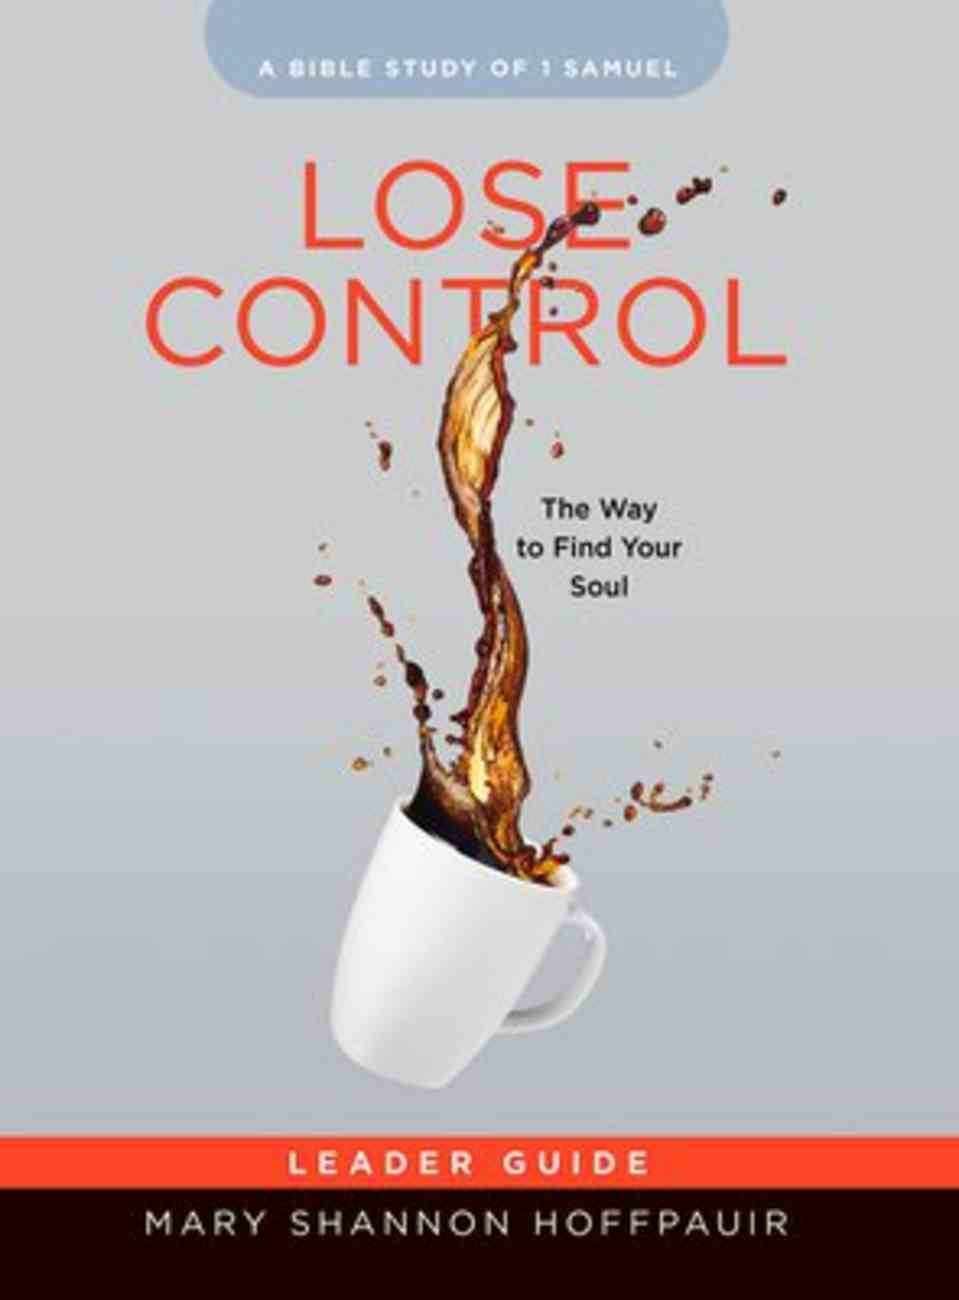 Lose Control - Women's Bible Study: The Way to Find Your Soul (Leader Guide) Paperback